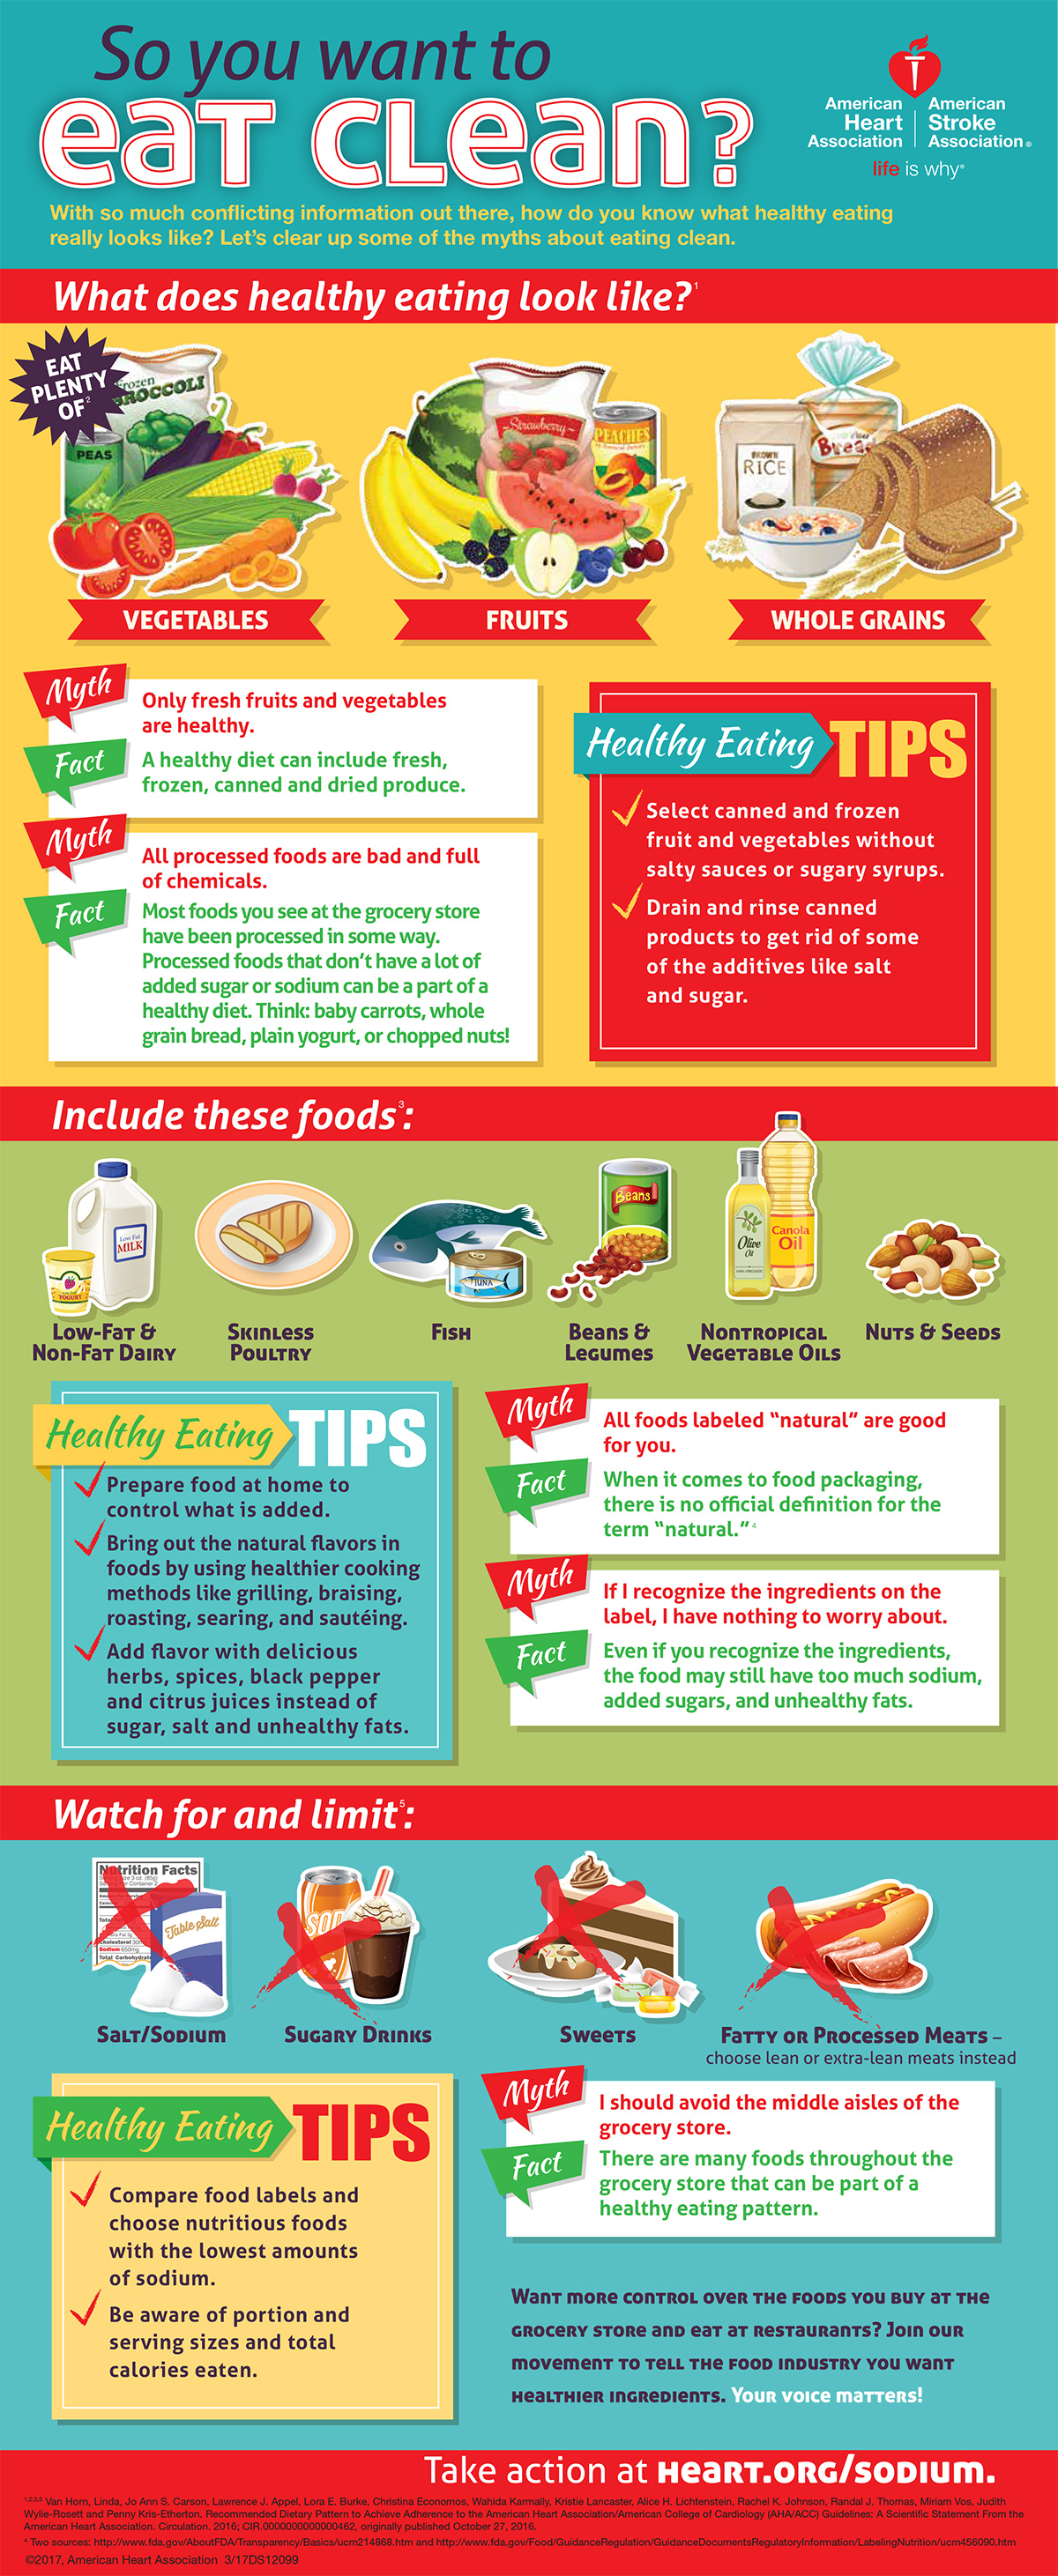 Clean-Eating-Infographic1200w.jpg